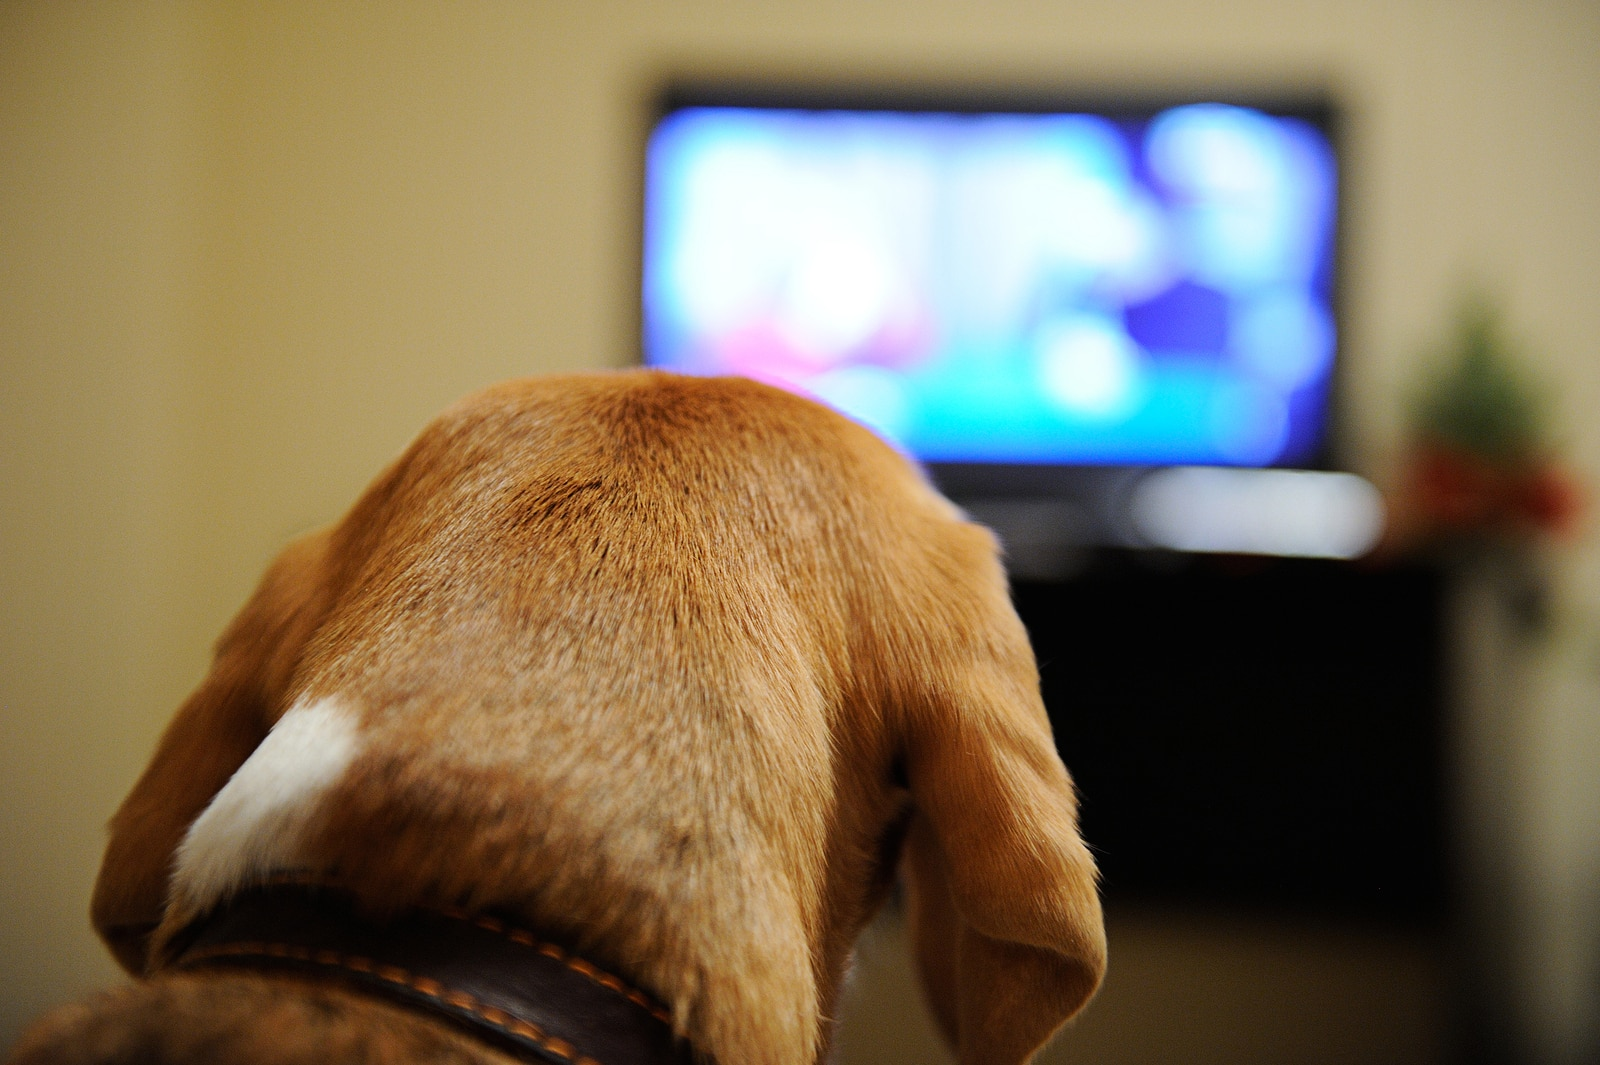 Beagle watching TV sitting on sofa in room